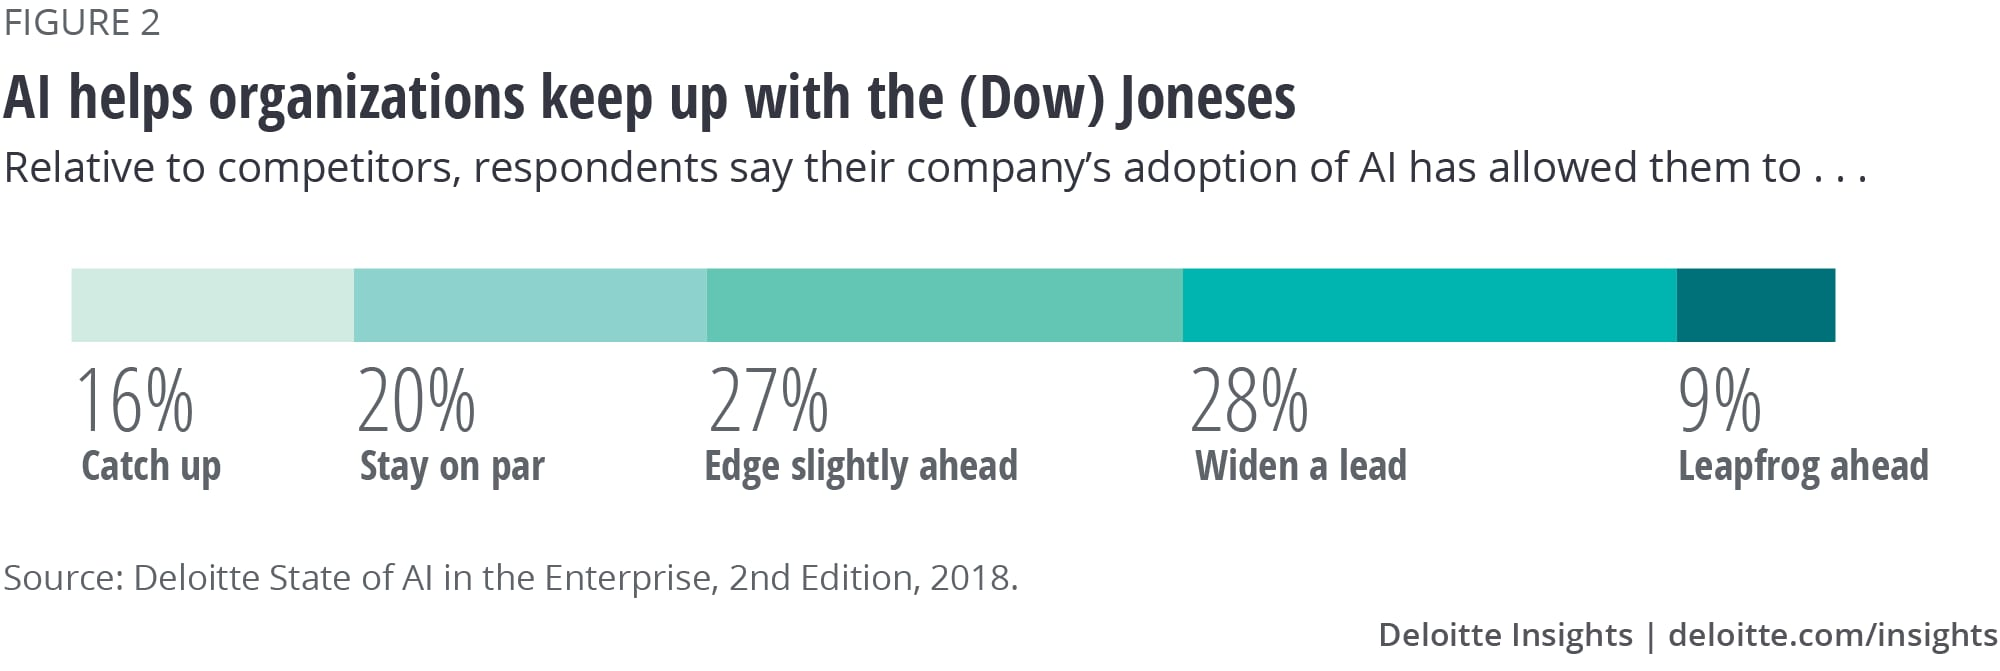 Figure 2. AI helps organizations keep up with the (Dow) Joneses